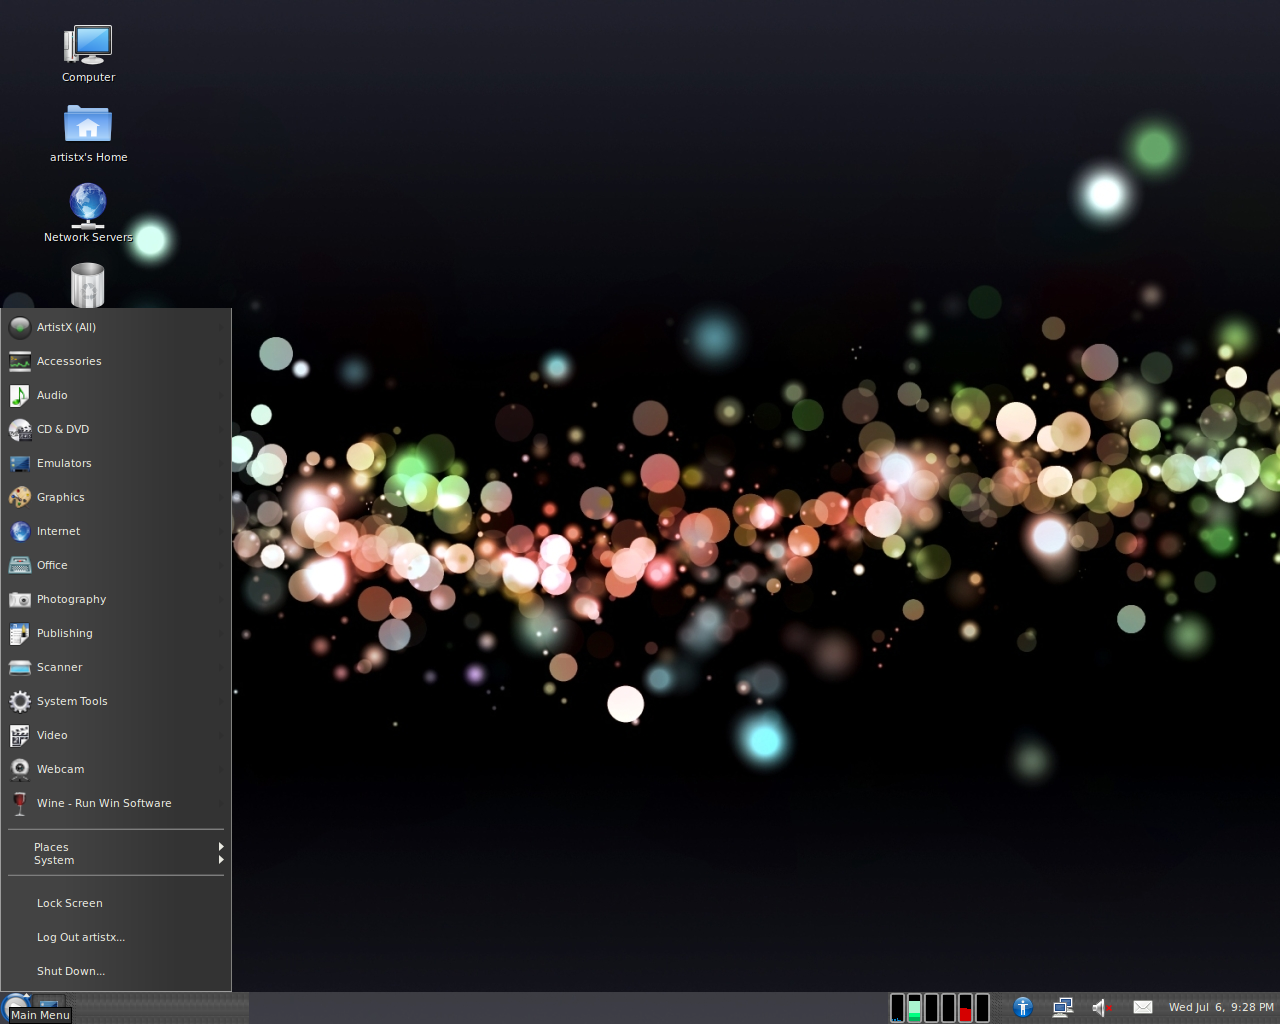 ArtistX is a Ubuntu based bootable DVD containing many 1280x1024